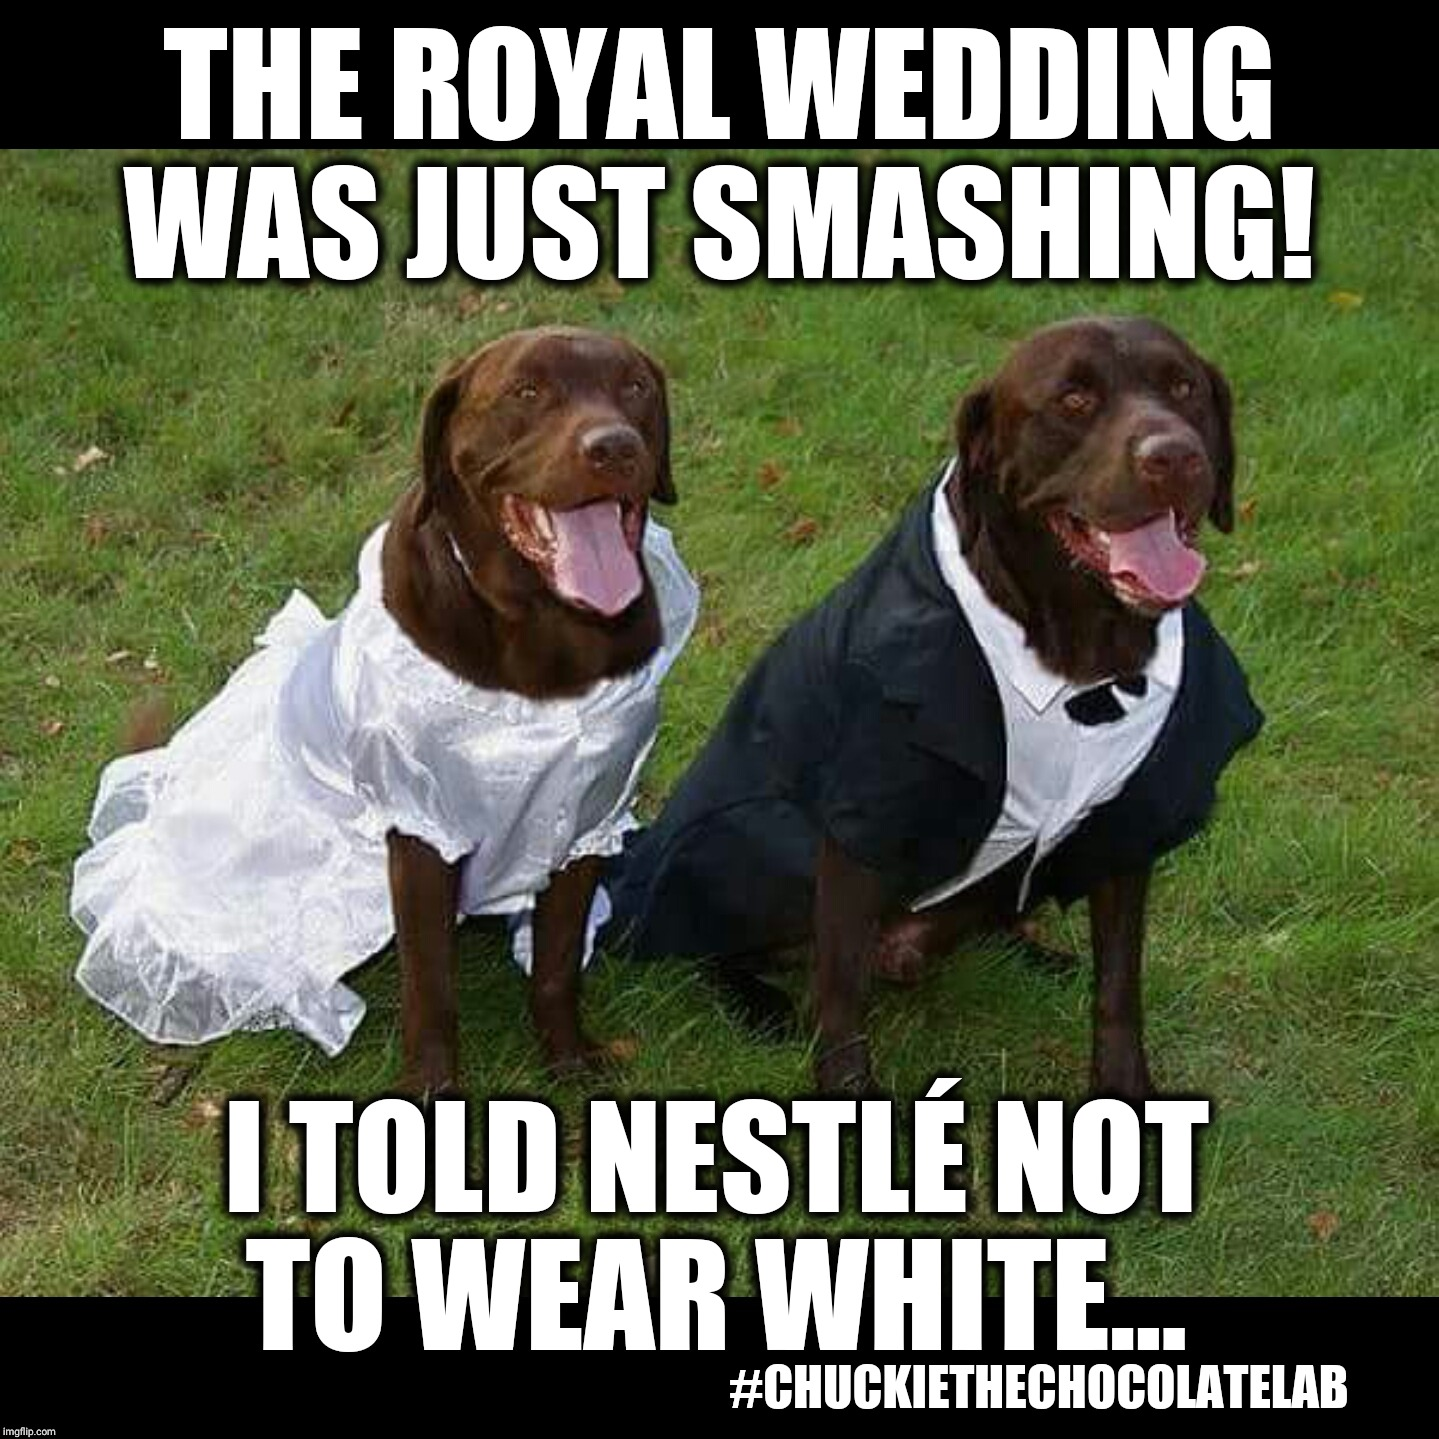 Royal wedding faux pas | THE ROYAL WEDDING WAS JUST SMASHING! I TOLD NESTLÉ NOT TO WEAR WHITE... #CHUCKIETHECHOCOLATELAB | image tagged in chuckie the chocolate lab teamchuckie,royal wedding,prince harry,funny,dogs,memes | made w/ Imgflip meme maker